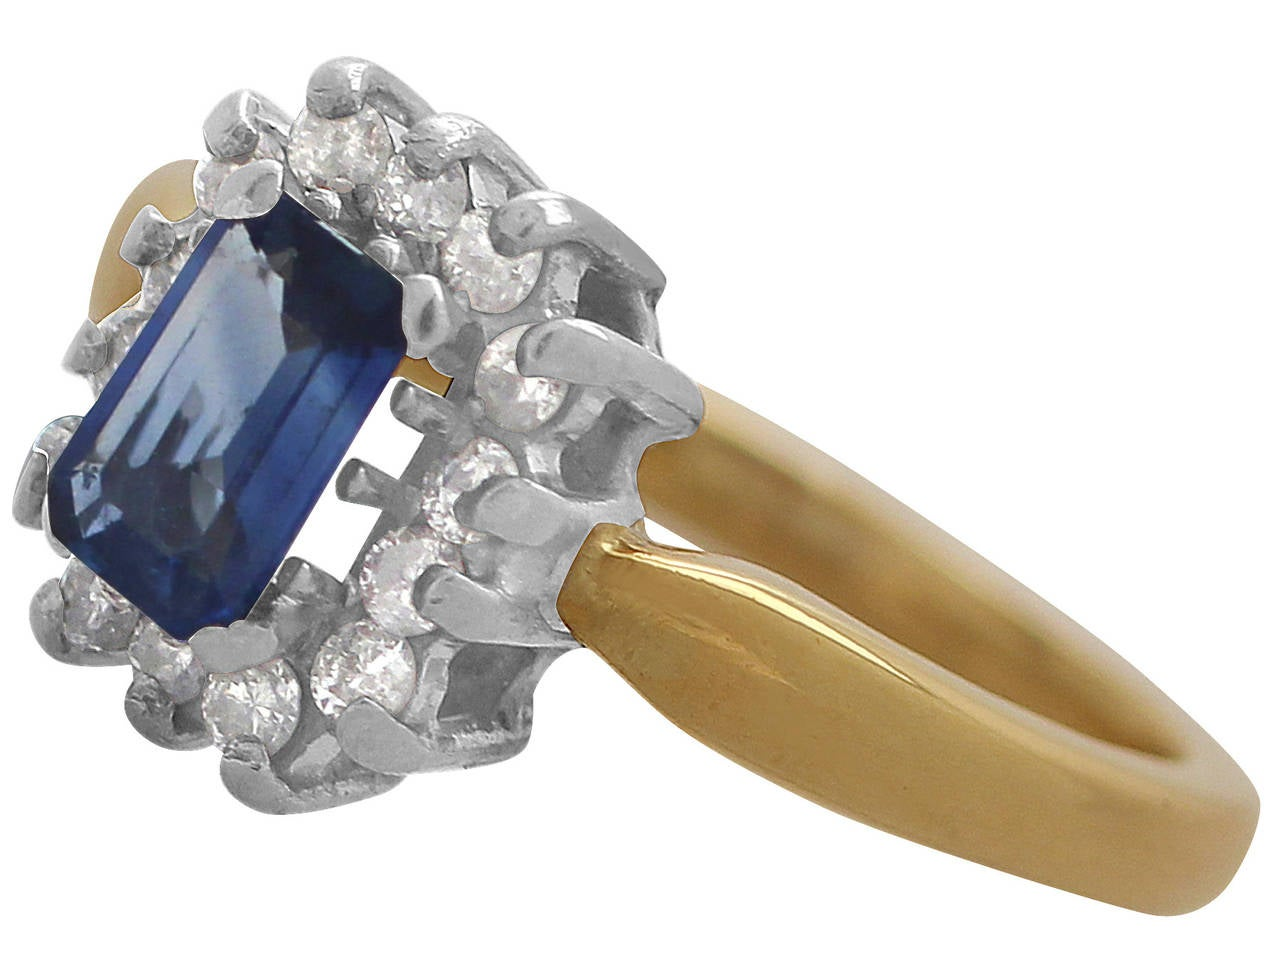 0.48Ct Sapphire & 0.35Ct Diamond, 18k Yellow Gold Cluster Ring - Vintage 4